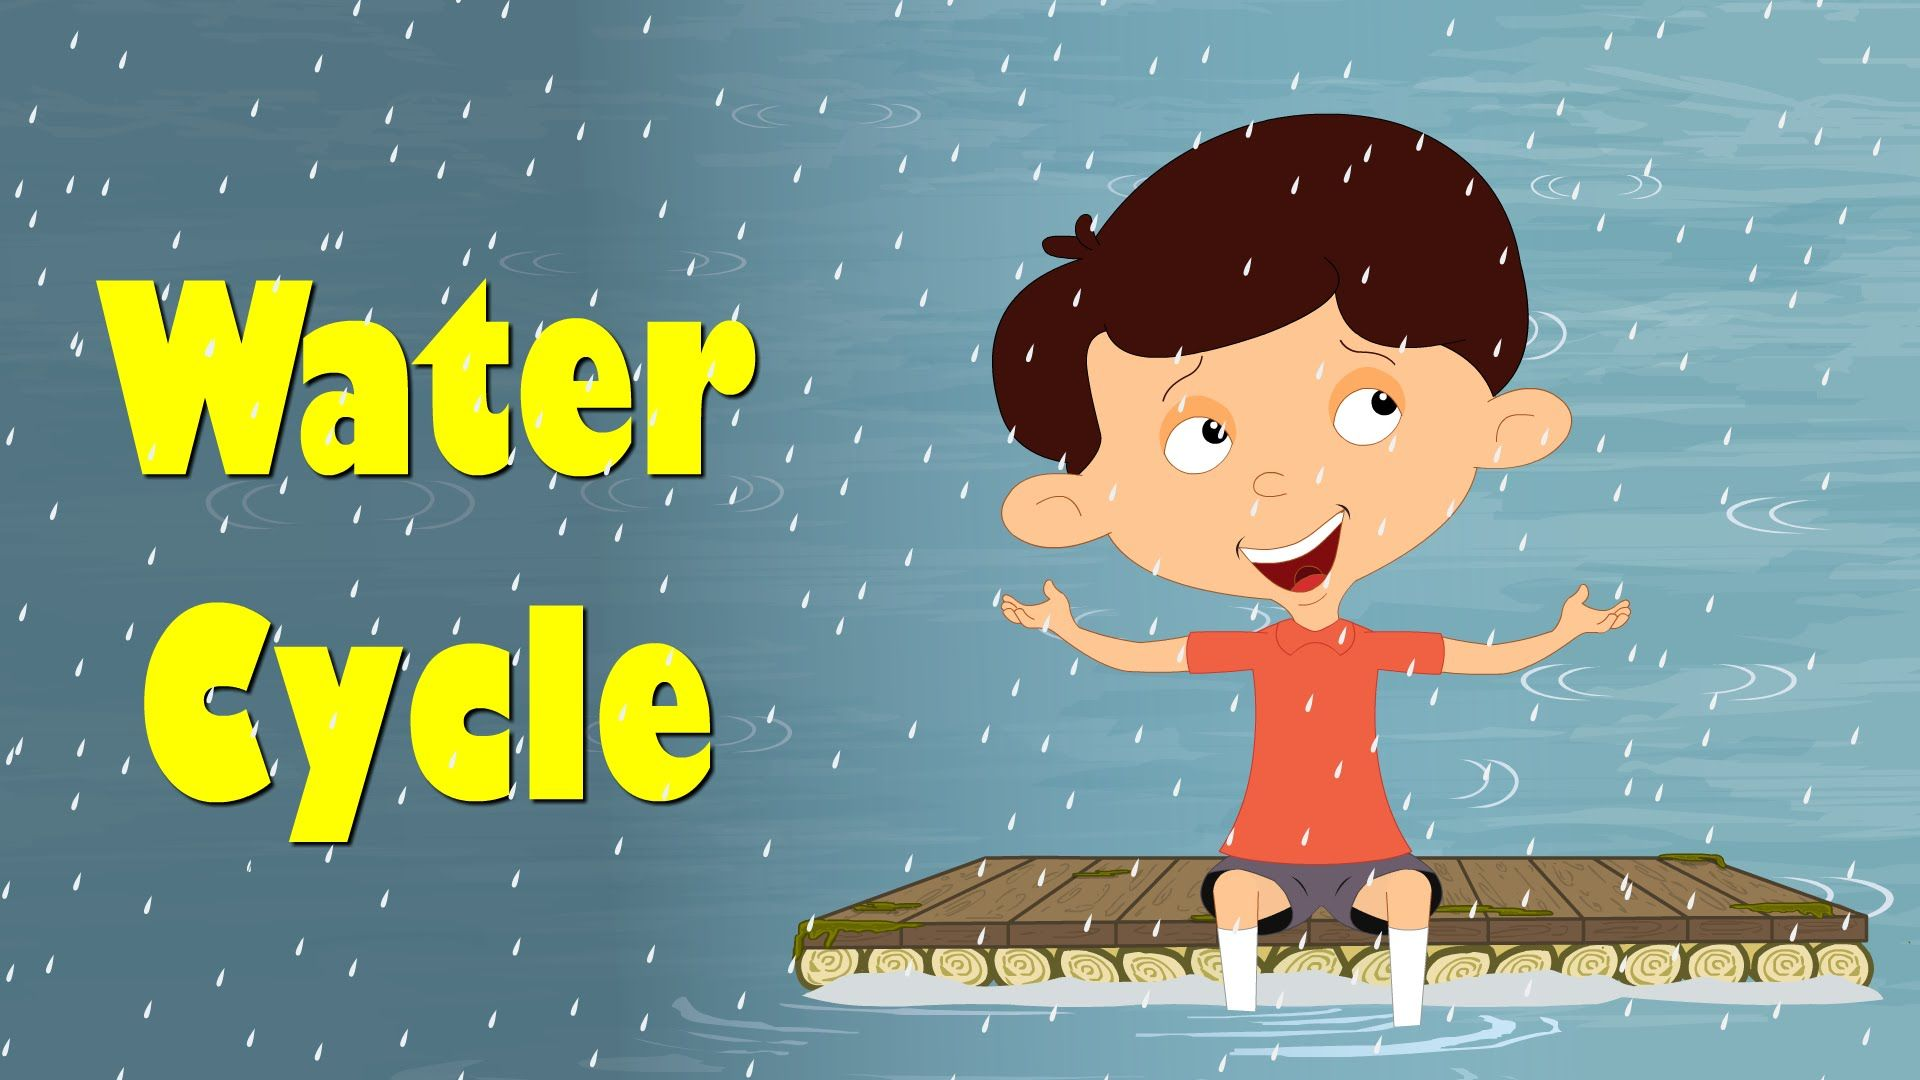 You Will Learn About Water Cycle In This Video The Sun Heats Up The Water From Oceans Lakes